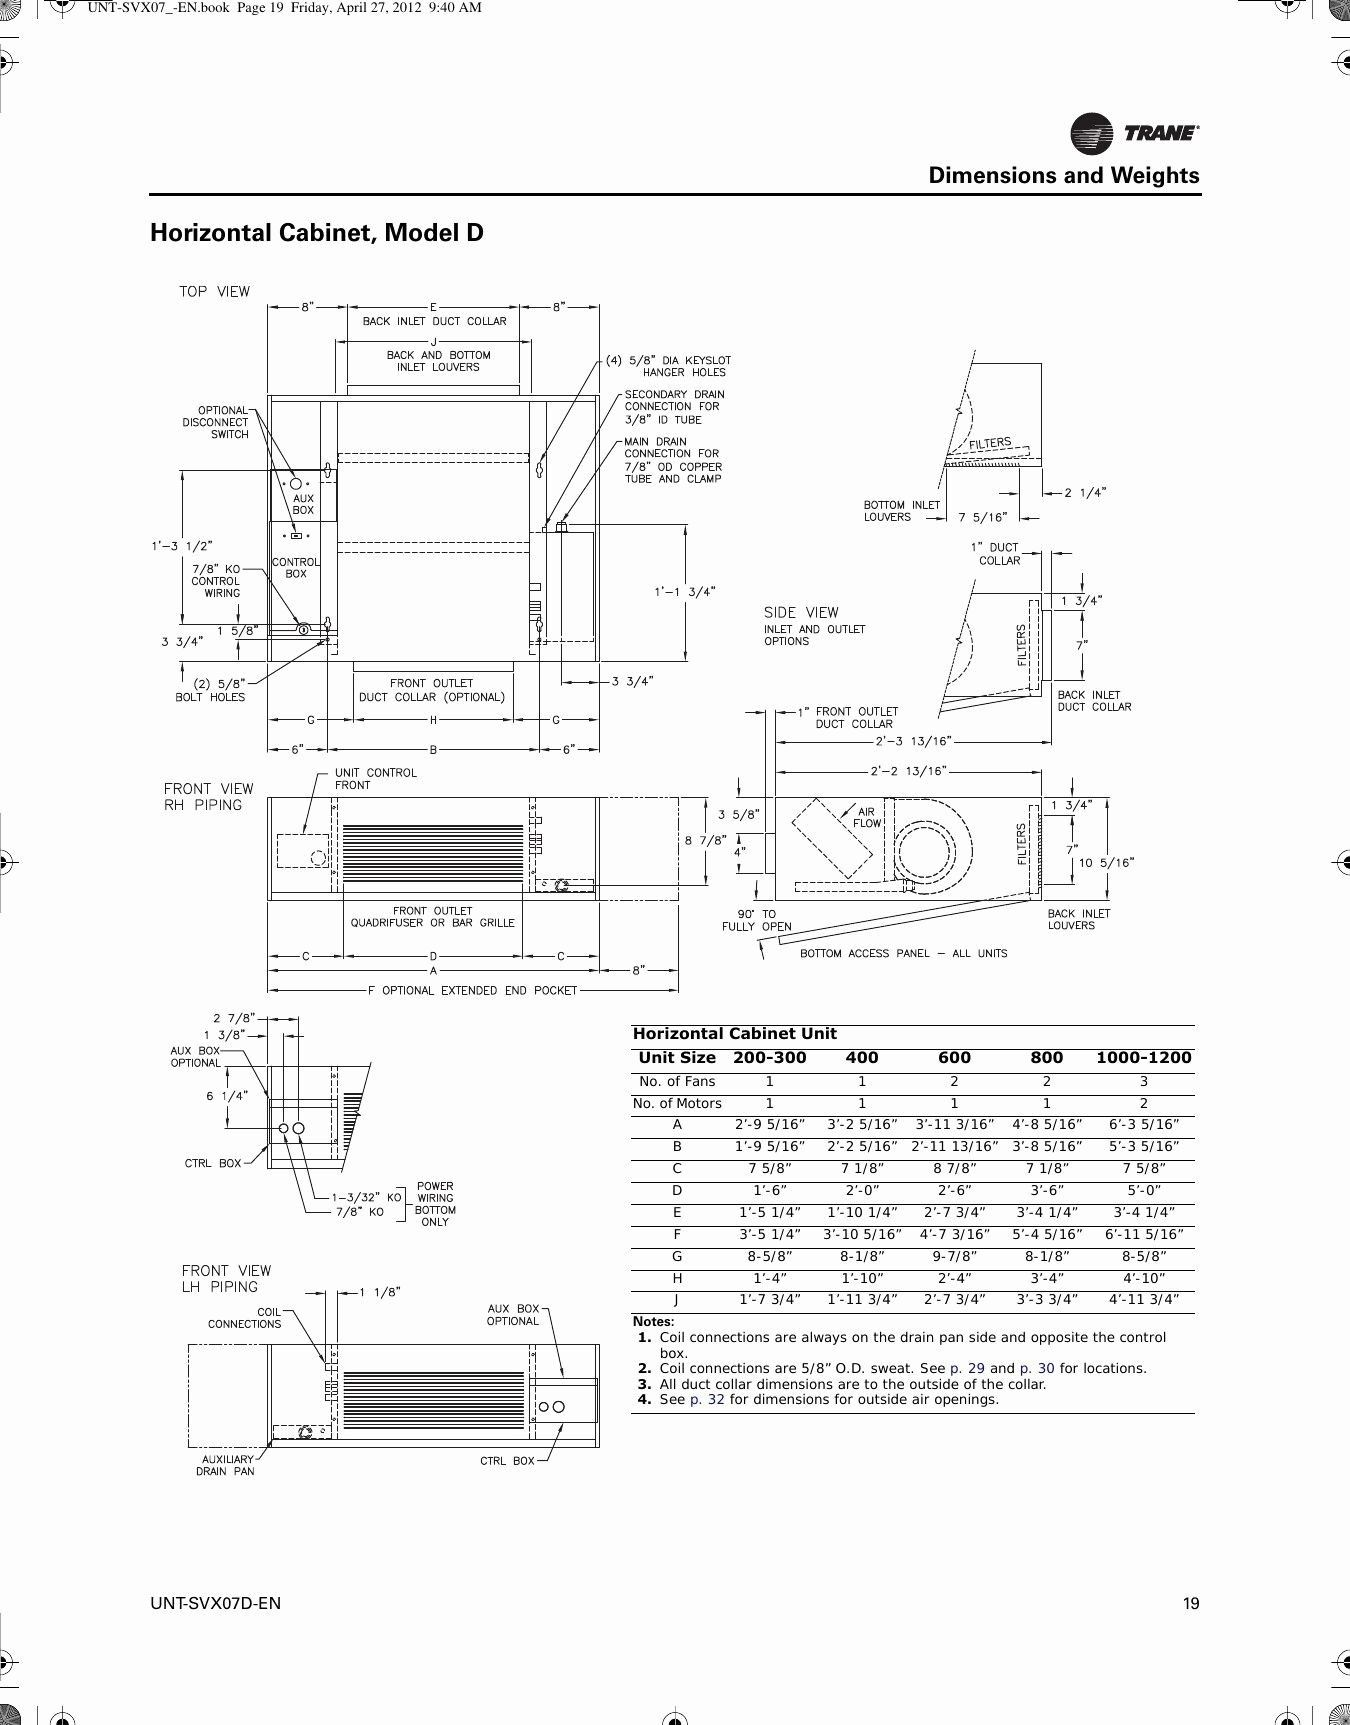 hight resolution of unique wiring diagram for underfloor heating thermostat diagrams digramssample diagramimages wiringdiagramsample wiringdiagram